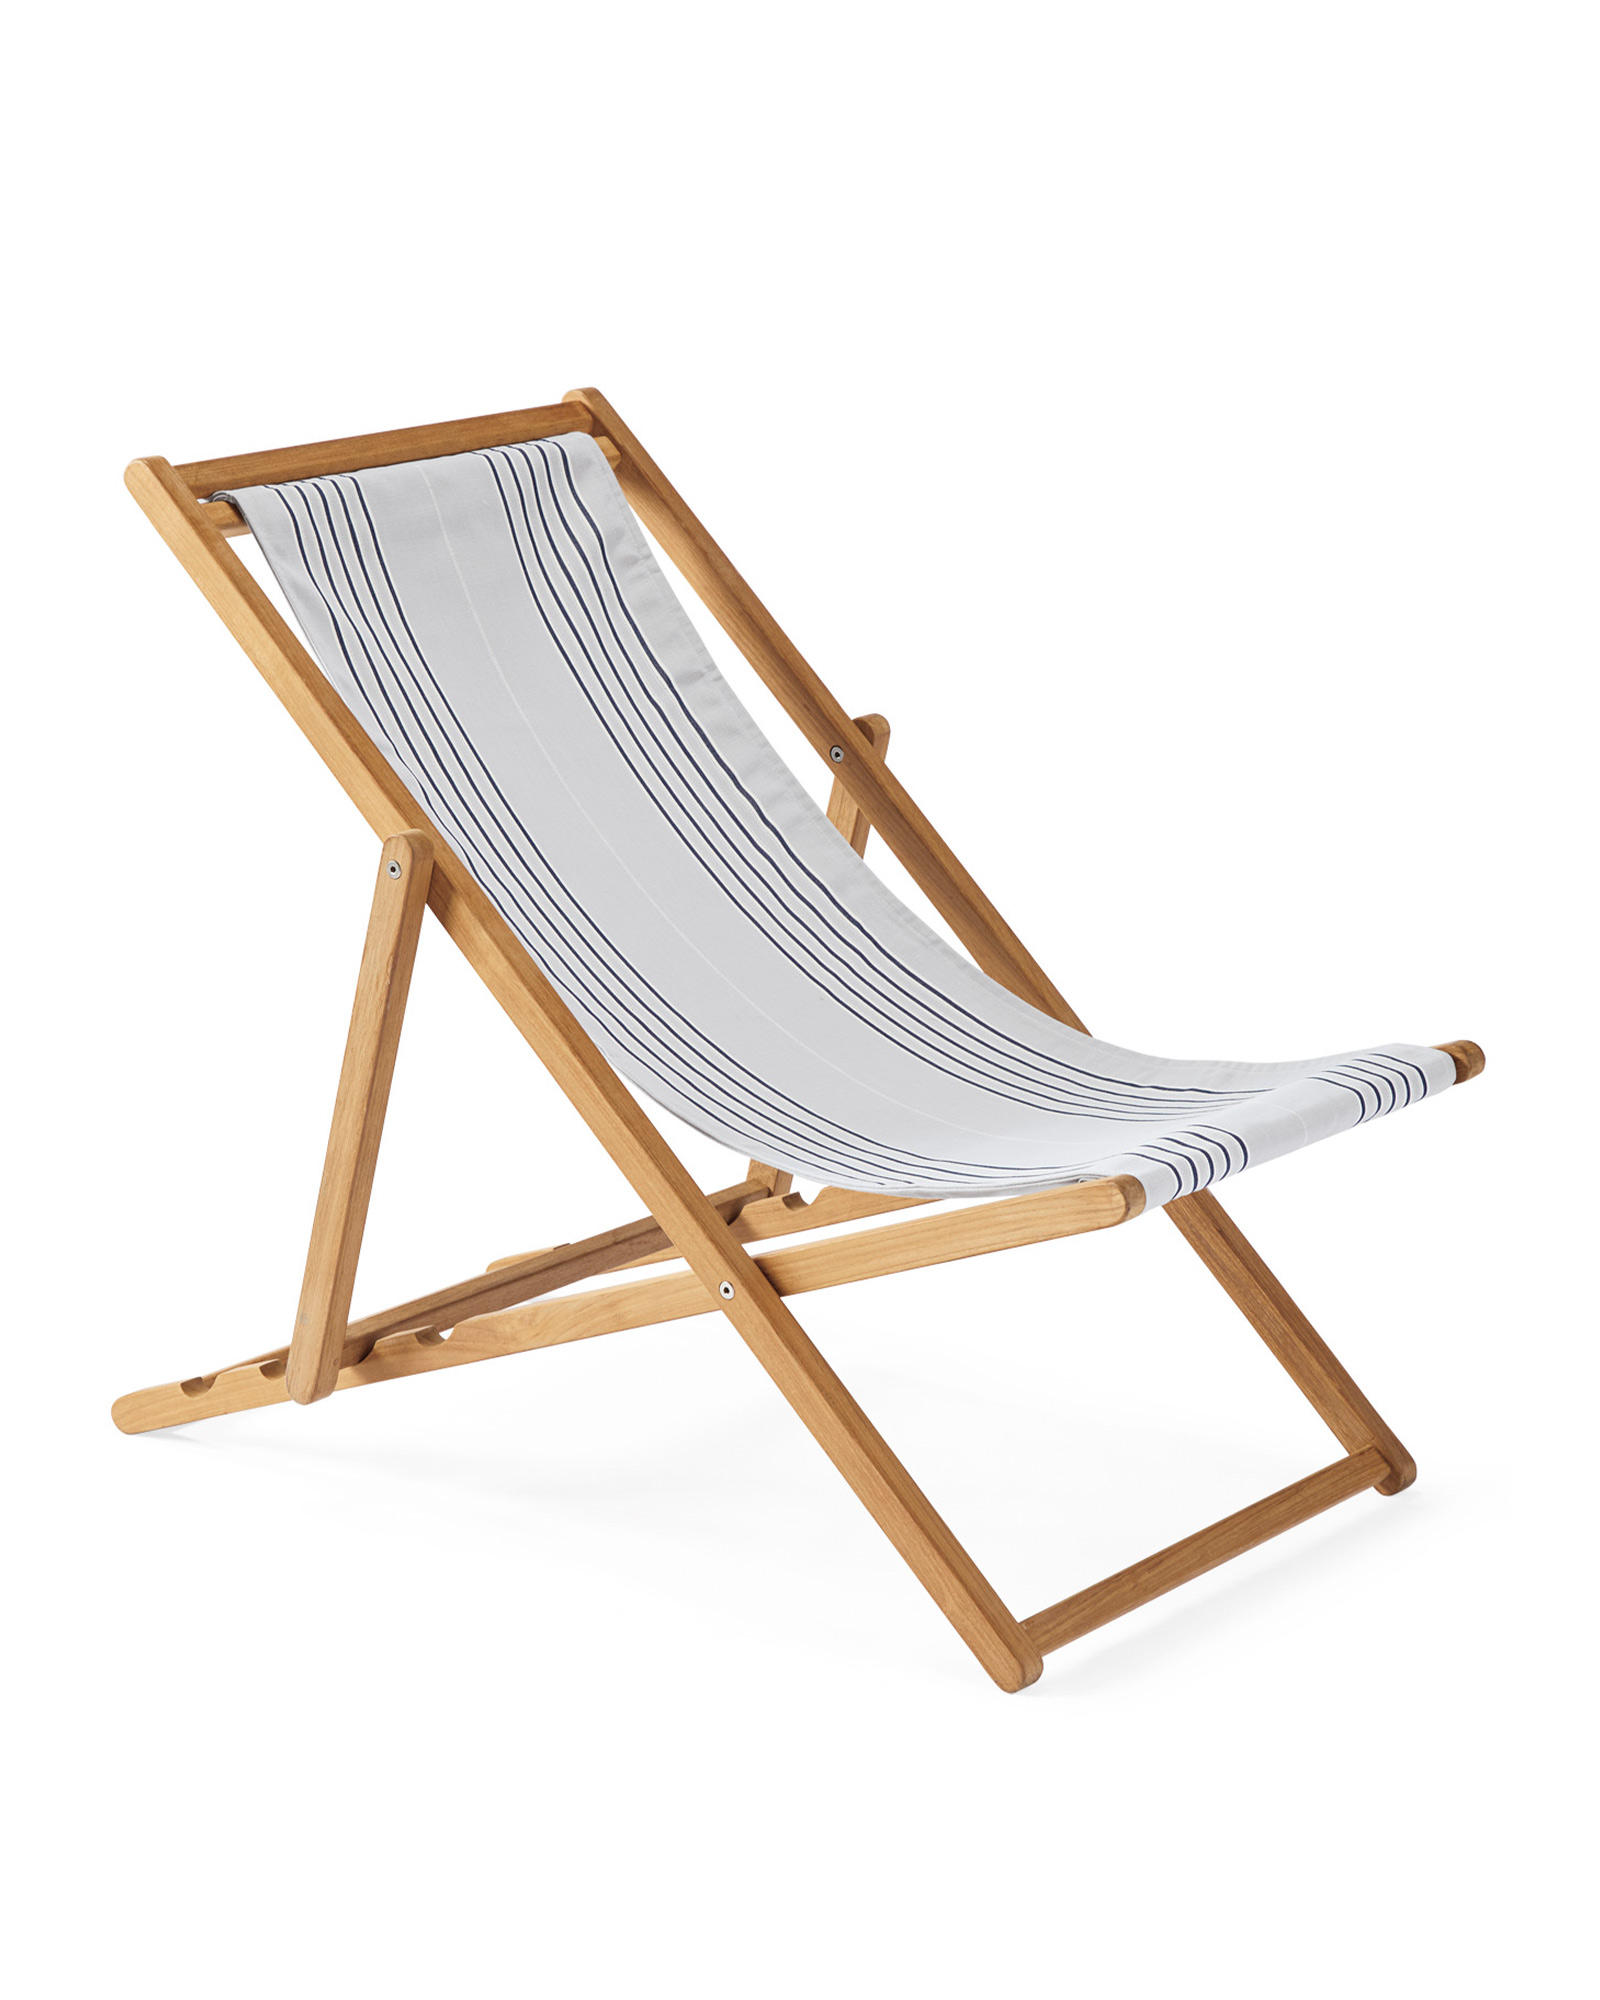 Teak Sling Chair, Perennials Lake Stripe Sky/Navy